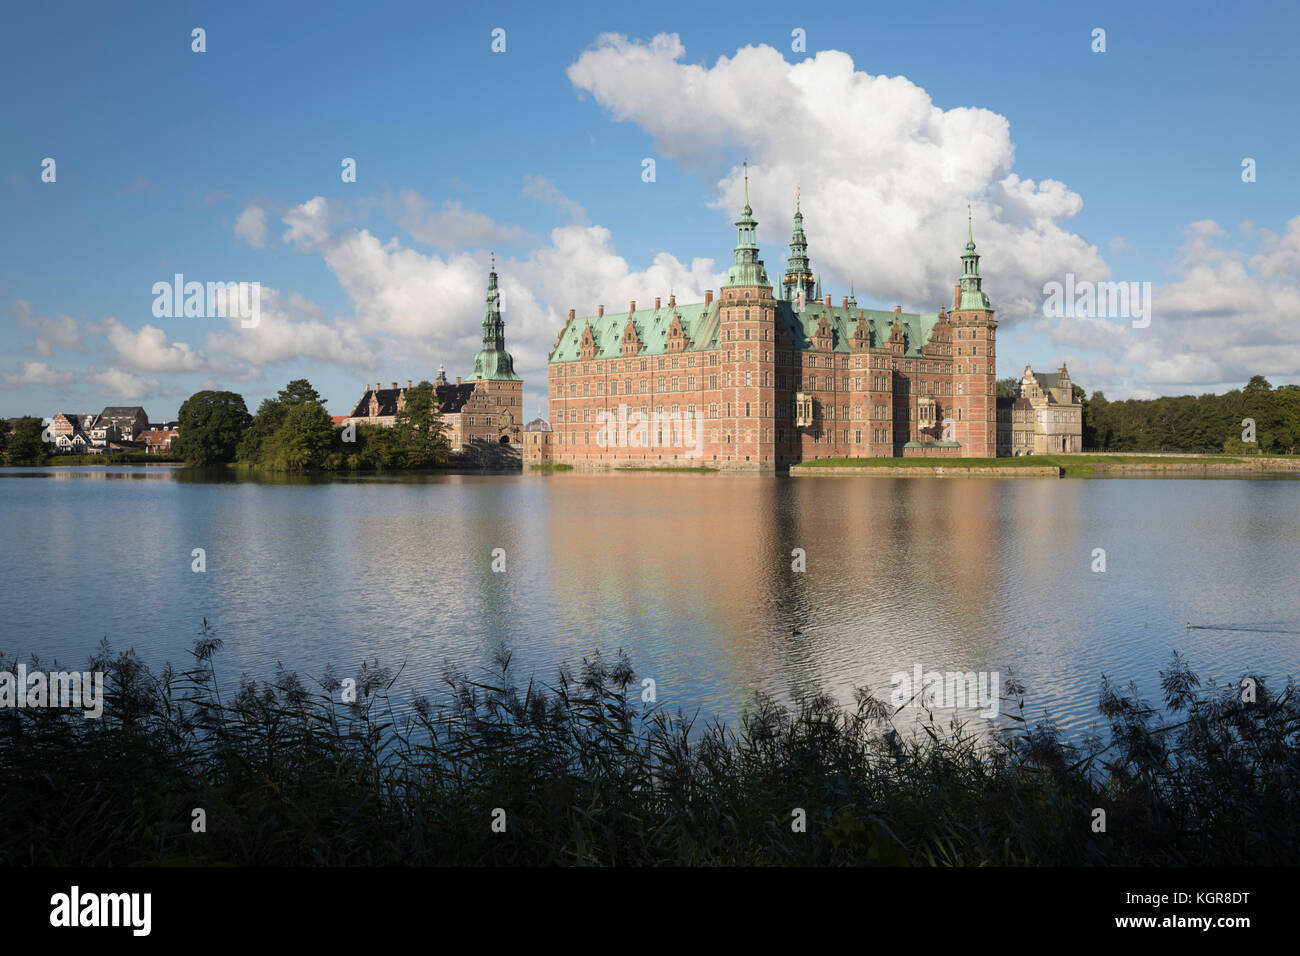 Frederiksborg Slot Castle built in the early 17th century for King Christian 4th on Castle Lake, Hillerod, Zealand, - Stock Image